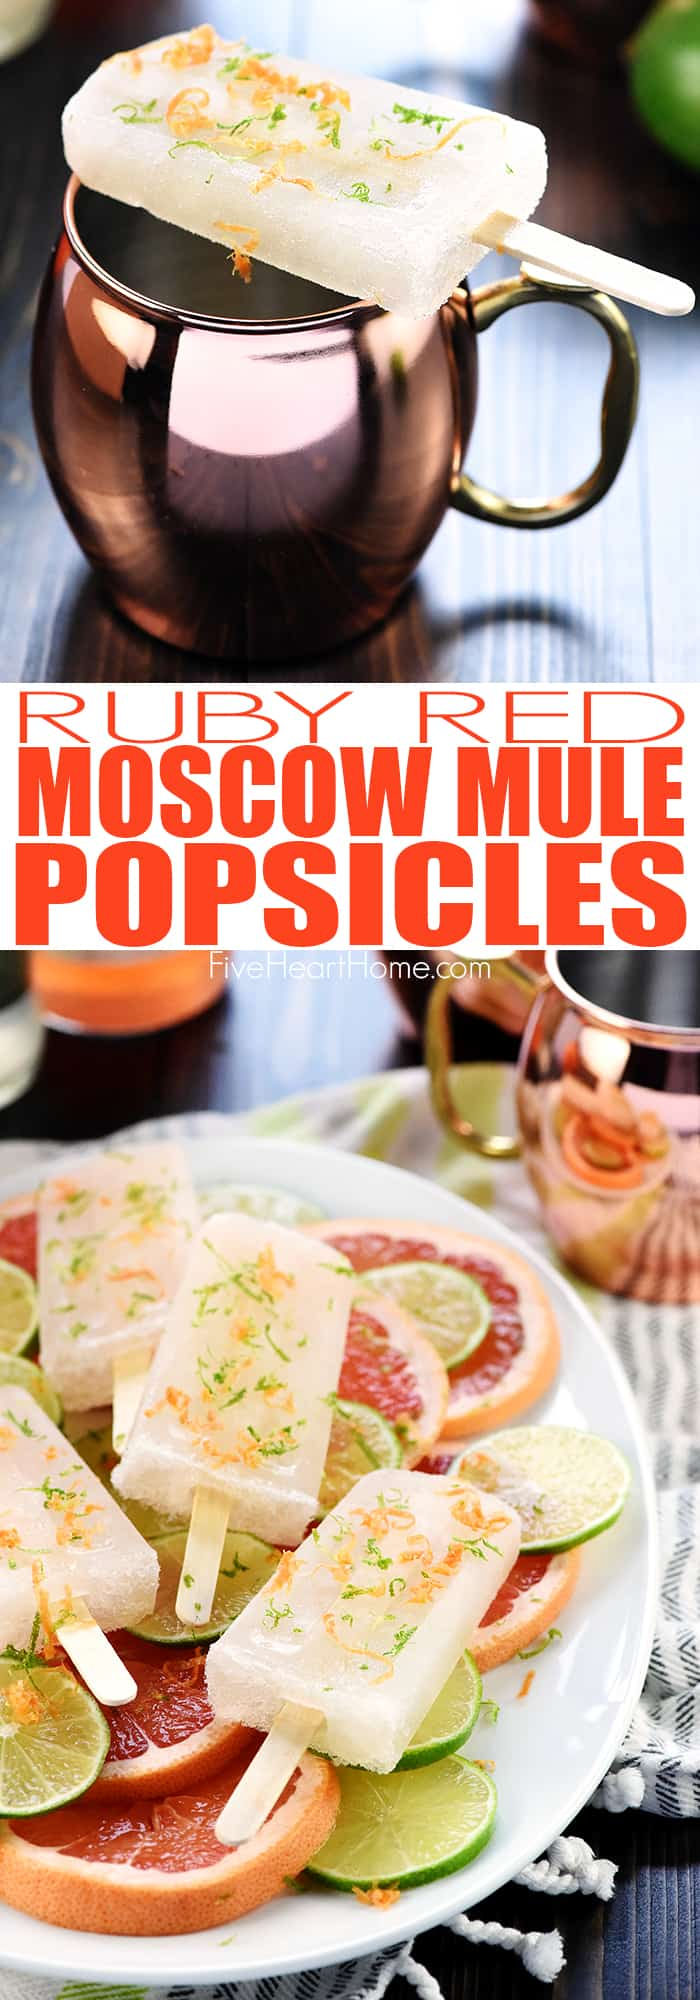 Ruby Red Moscow Mule Popsicles Collage with Text Overlay